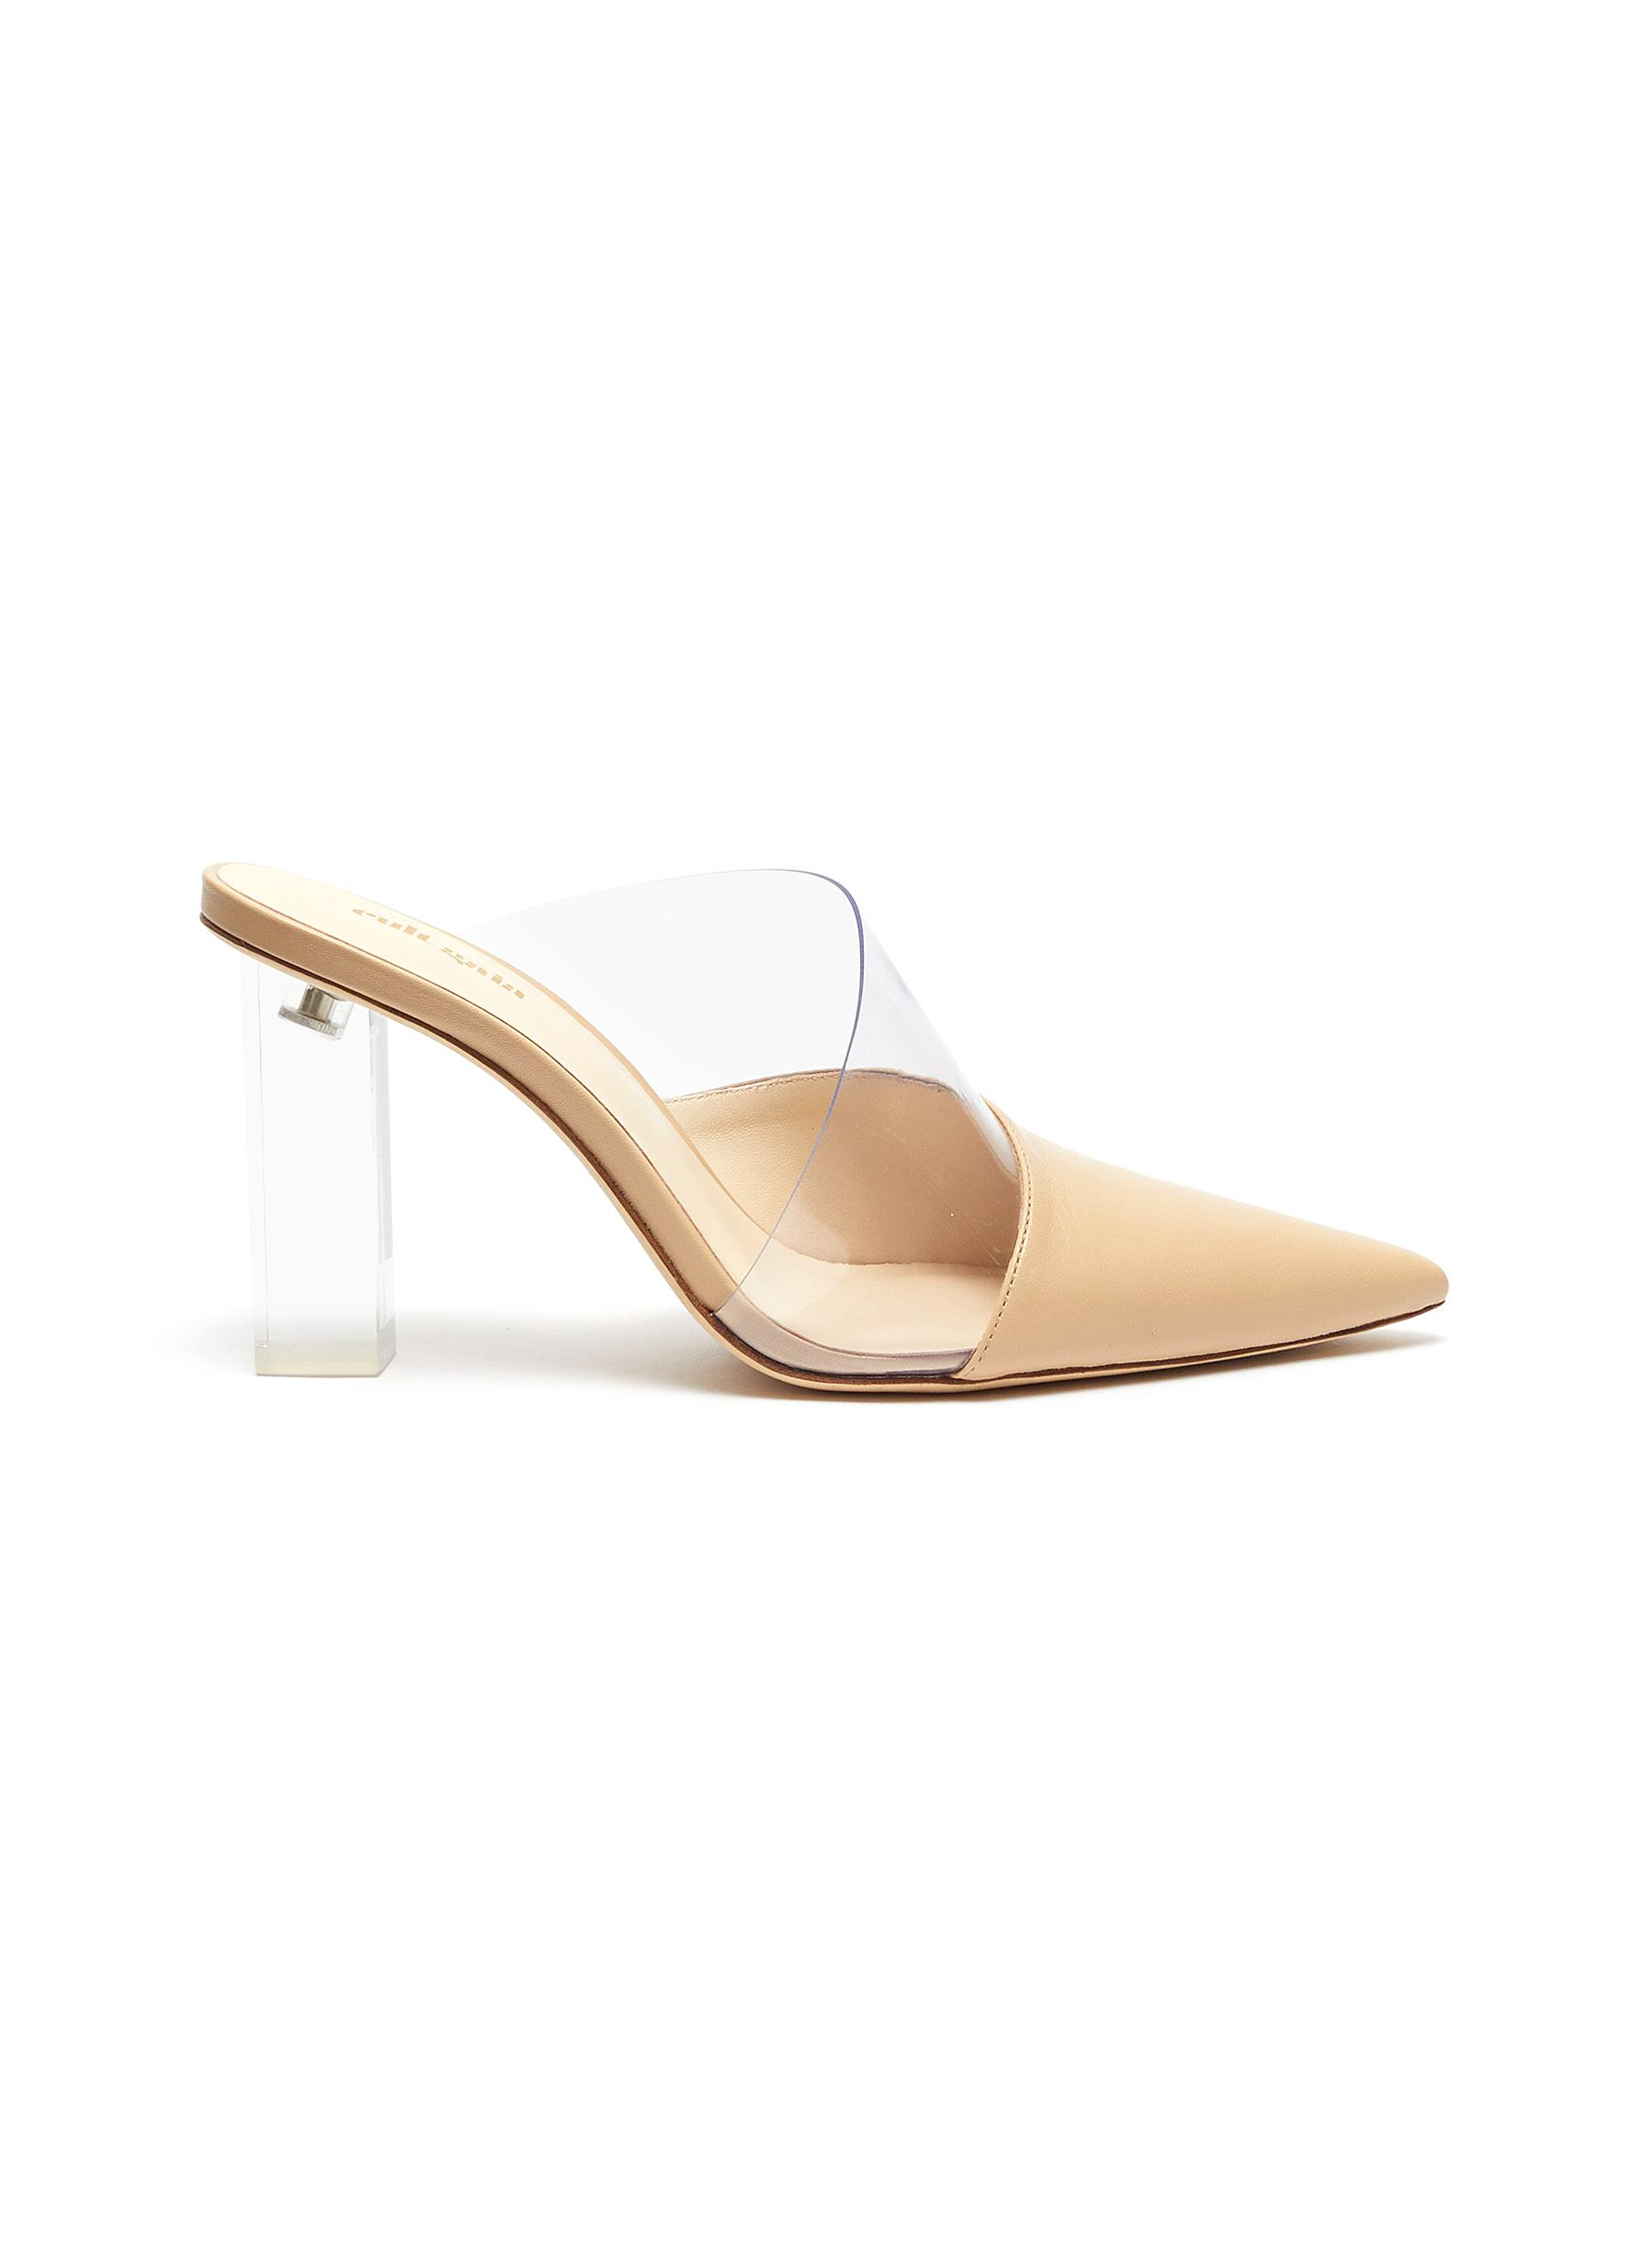 Krystle PVC panel leather mules by Cult Gaia